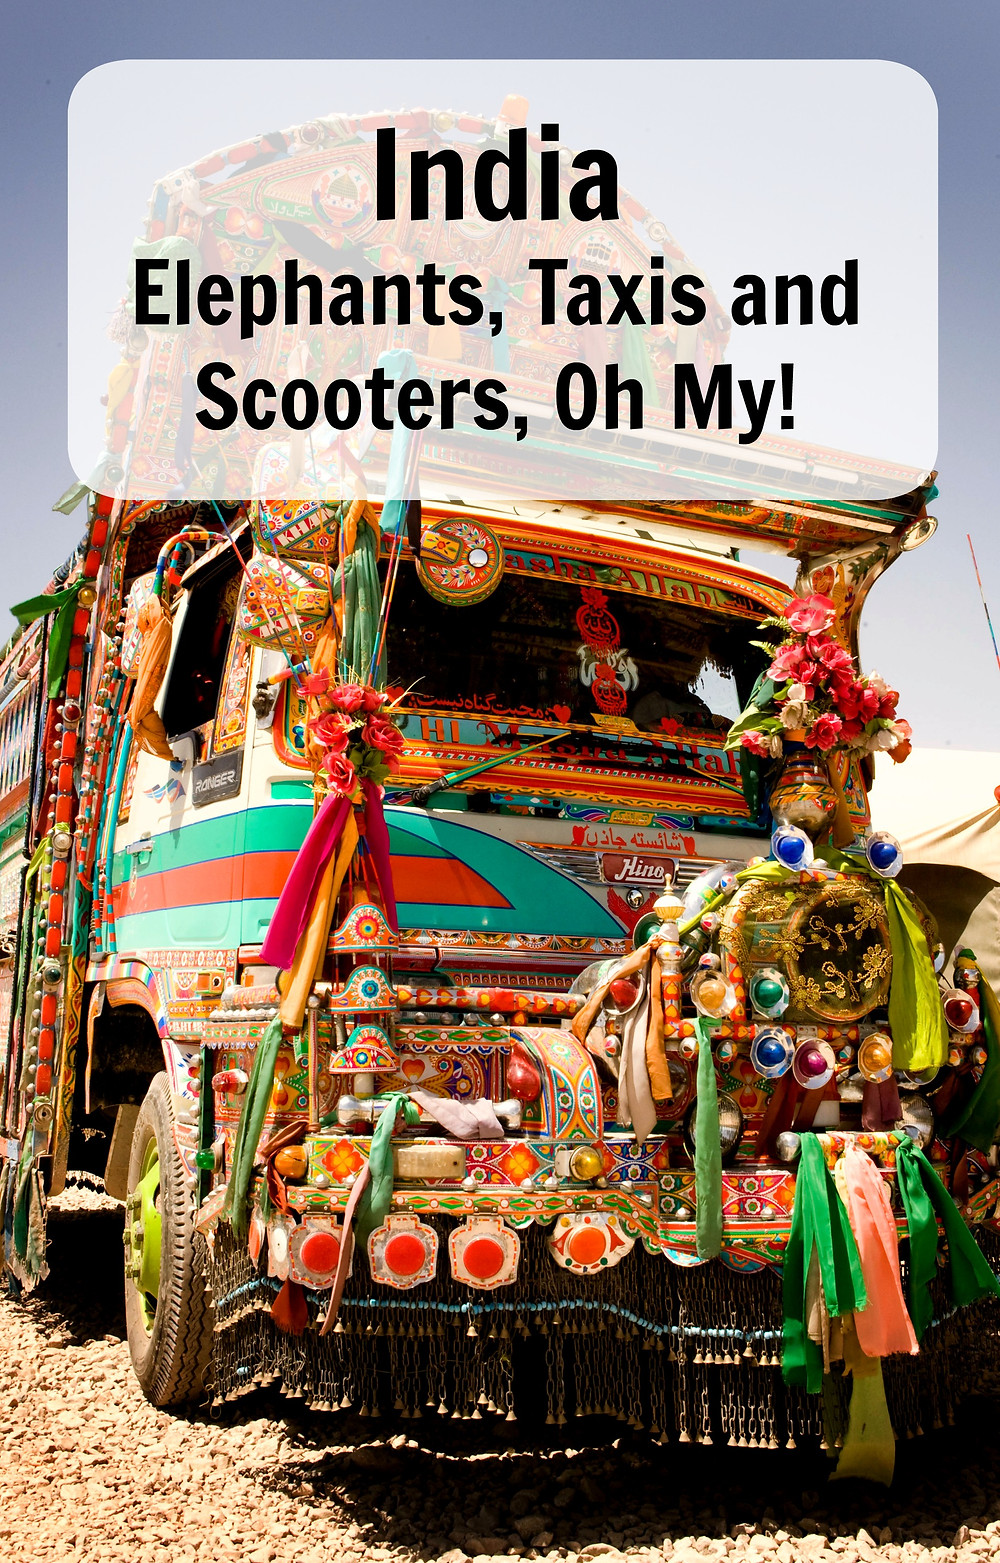 India - Elephants, taxia and scooters, oh my